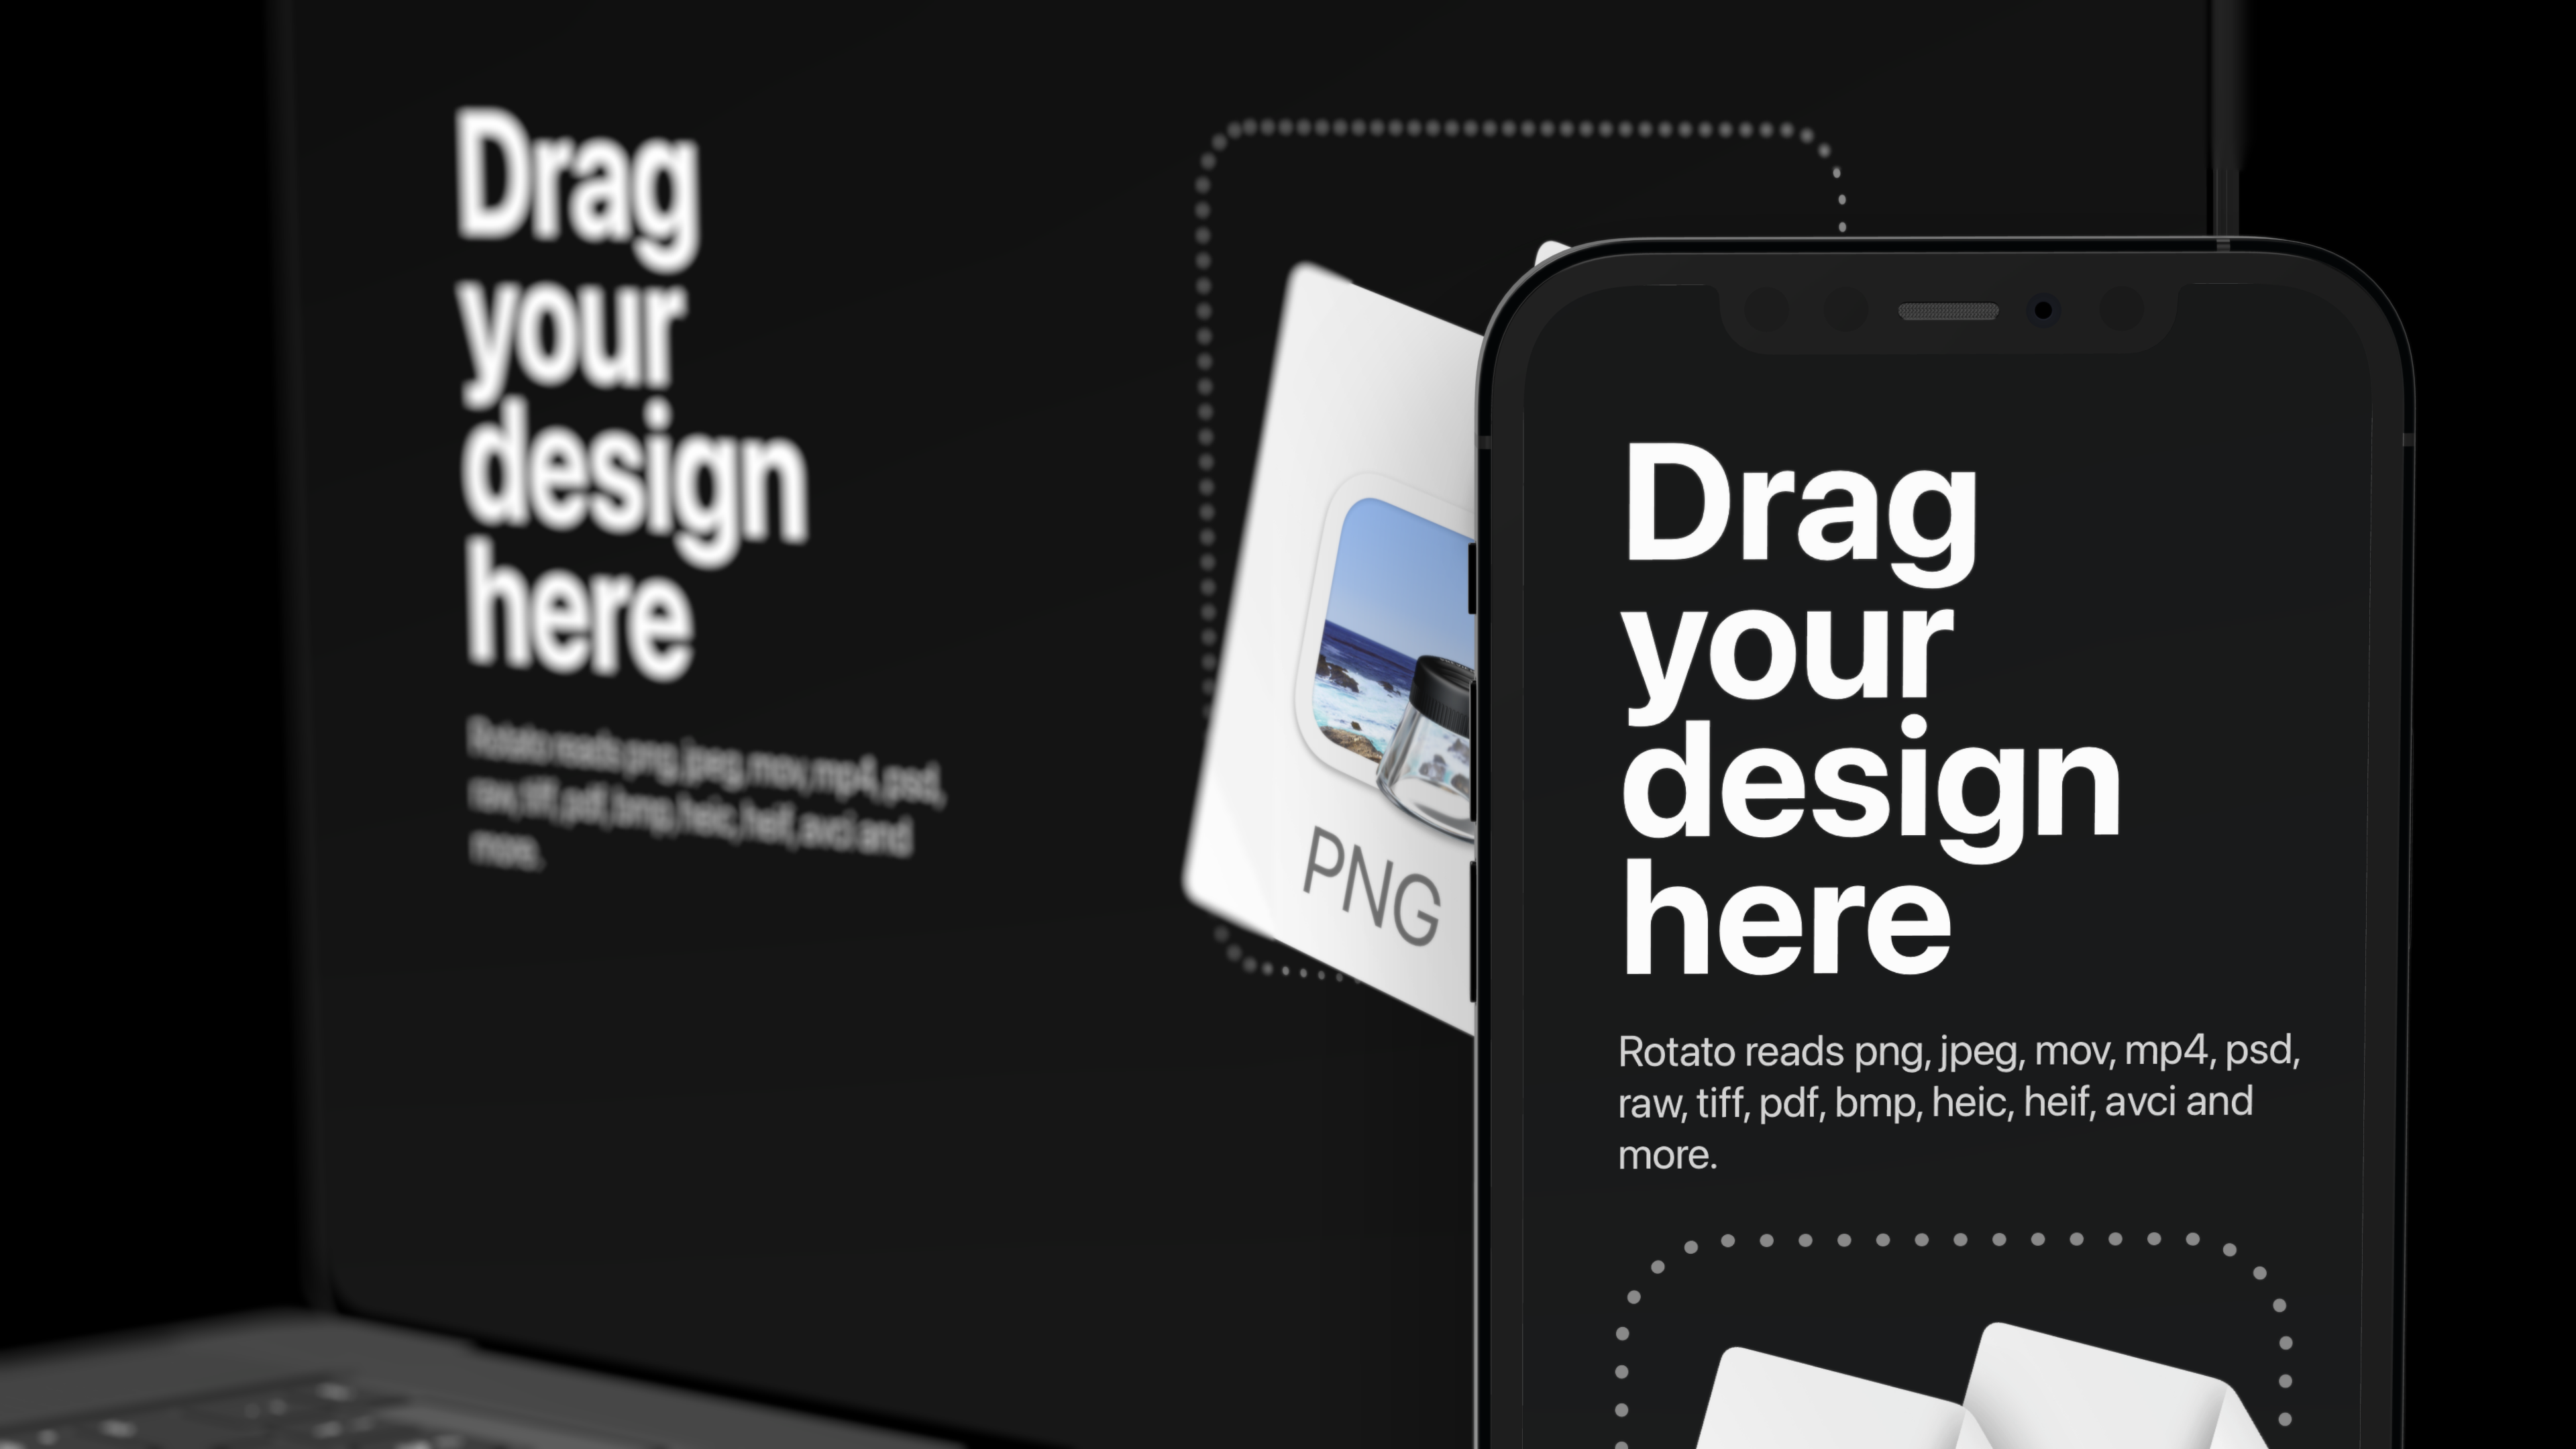 Mockup with an iPhone in front of a Macbook on a black background